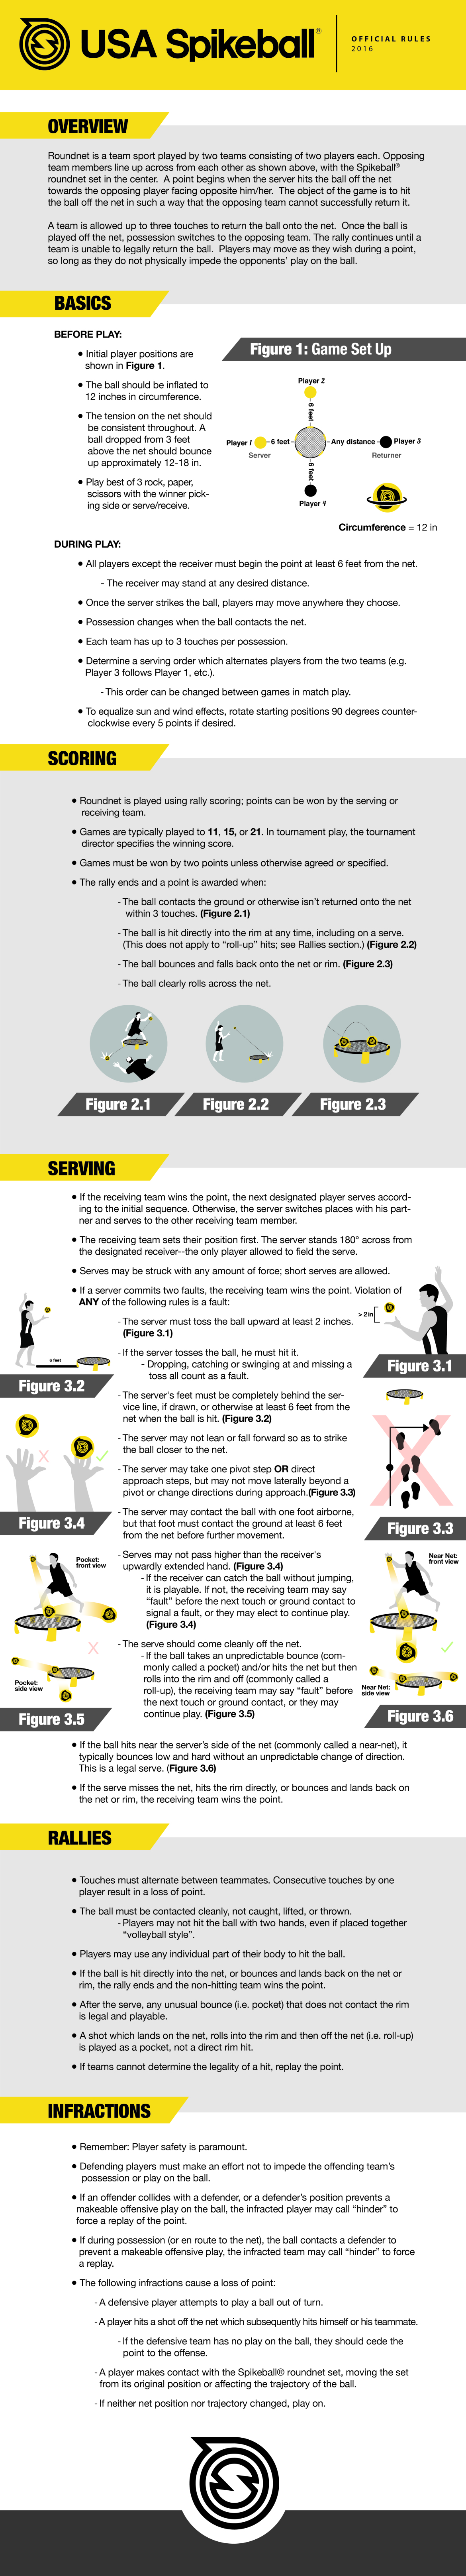 Rule Infographic 2016 Final 01 Physical Education